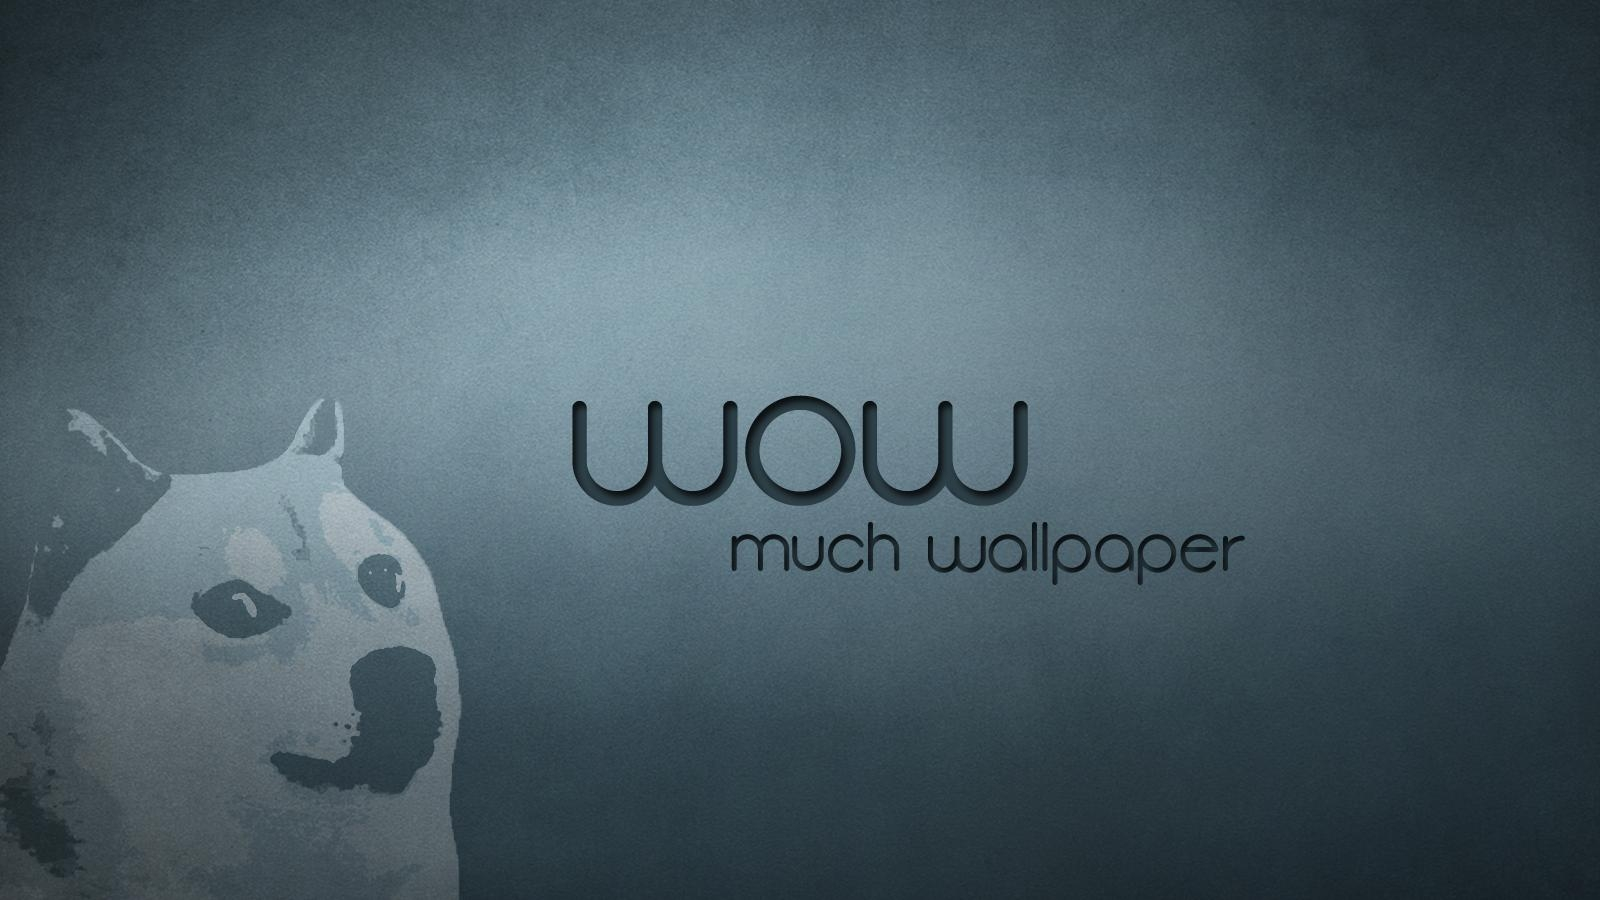 Wow Such Wallpaper   Doge Wallpaper 1600x900 18371 1600x900